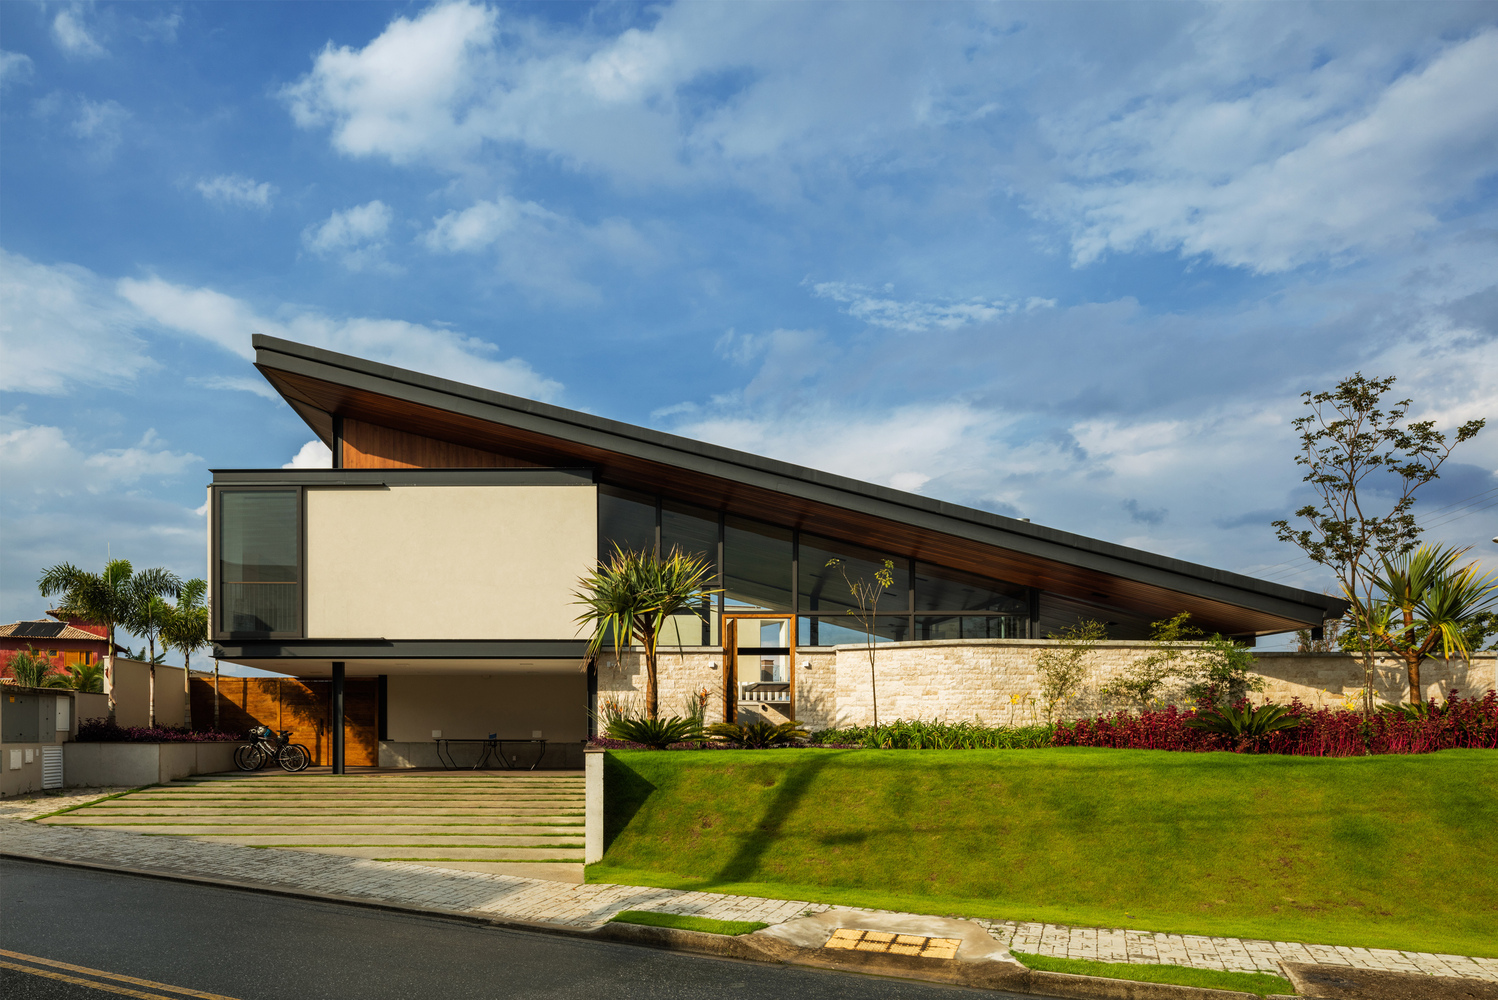 An expansive sloped roof for a family home in Brazil.